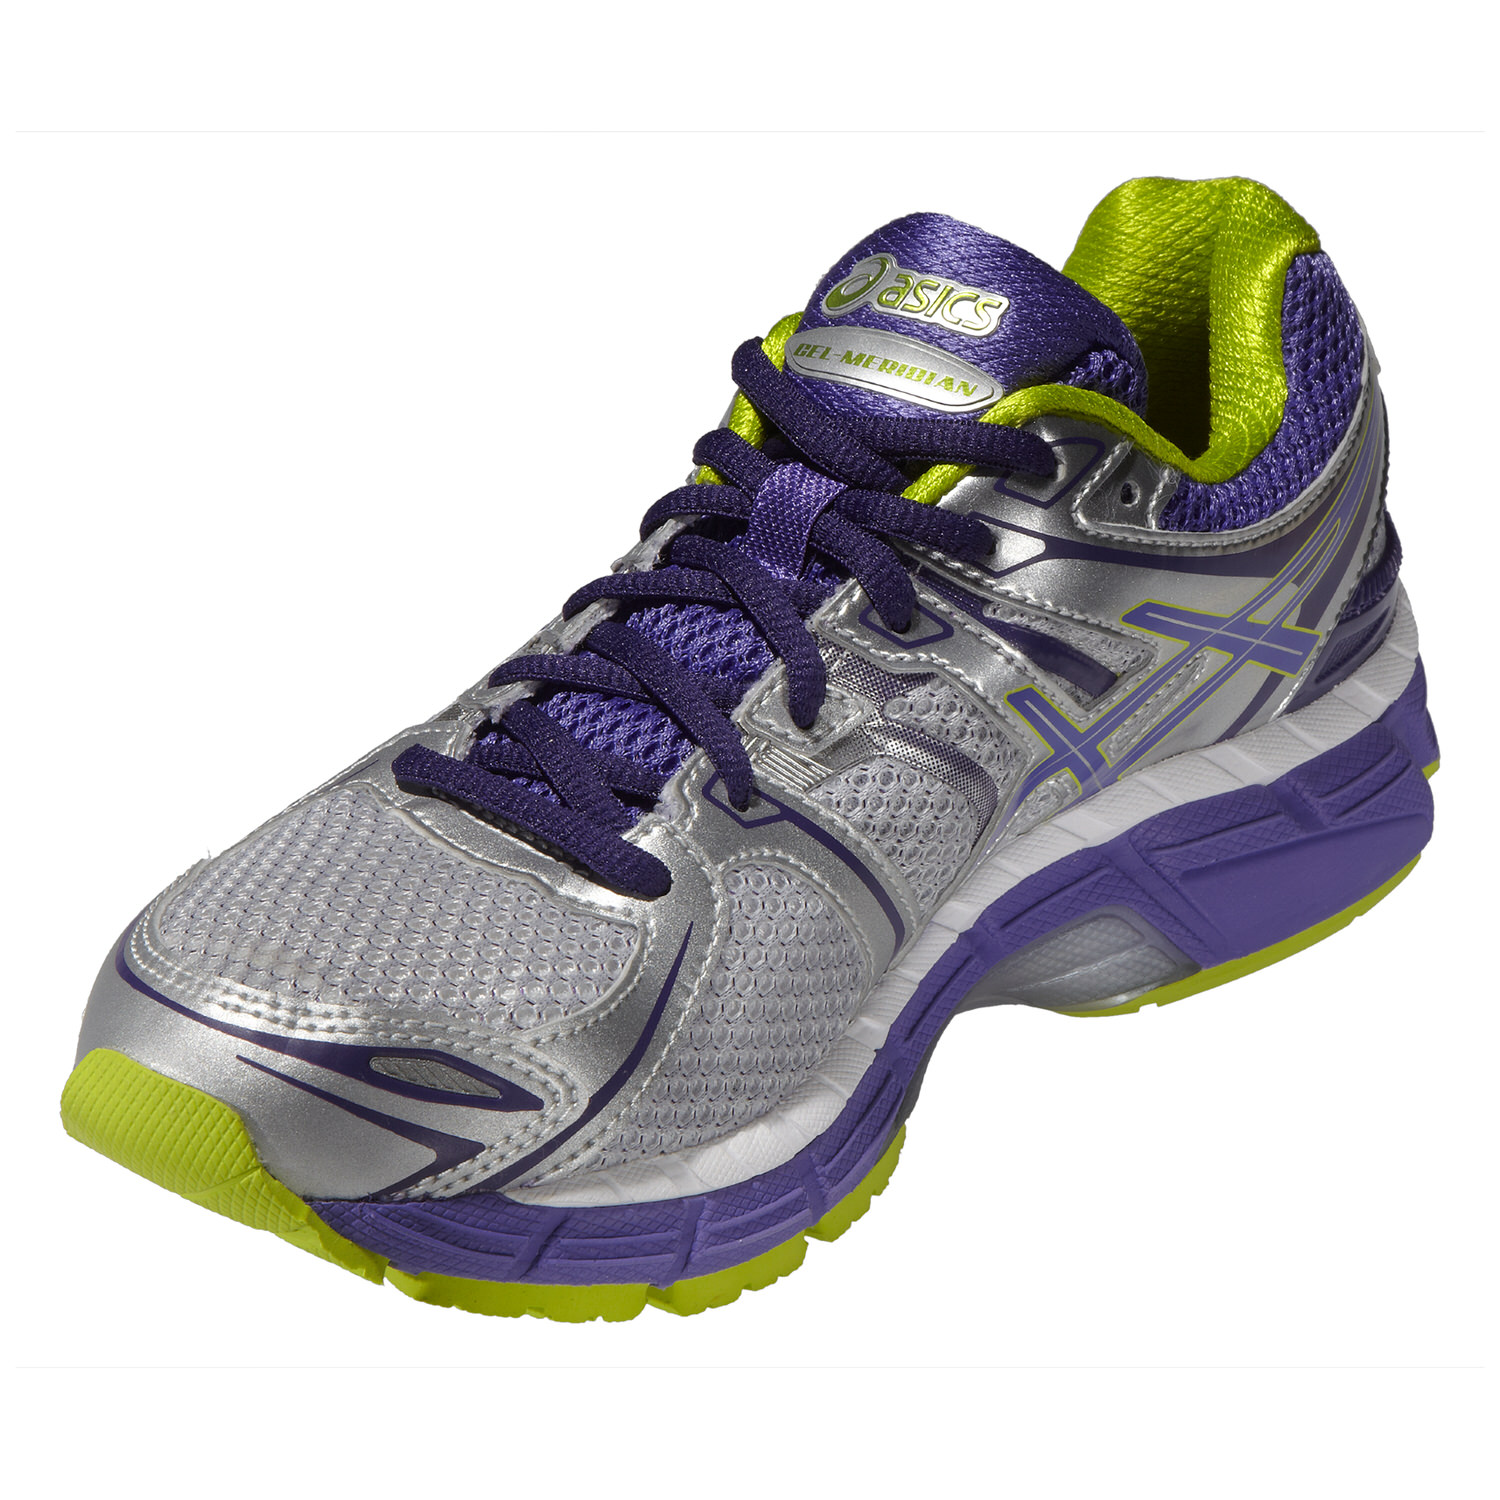 asics gel pursue damen laufschuhe laufen pacemaker. Black Bedroom Furniture Sets. Home Design Ideas